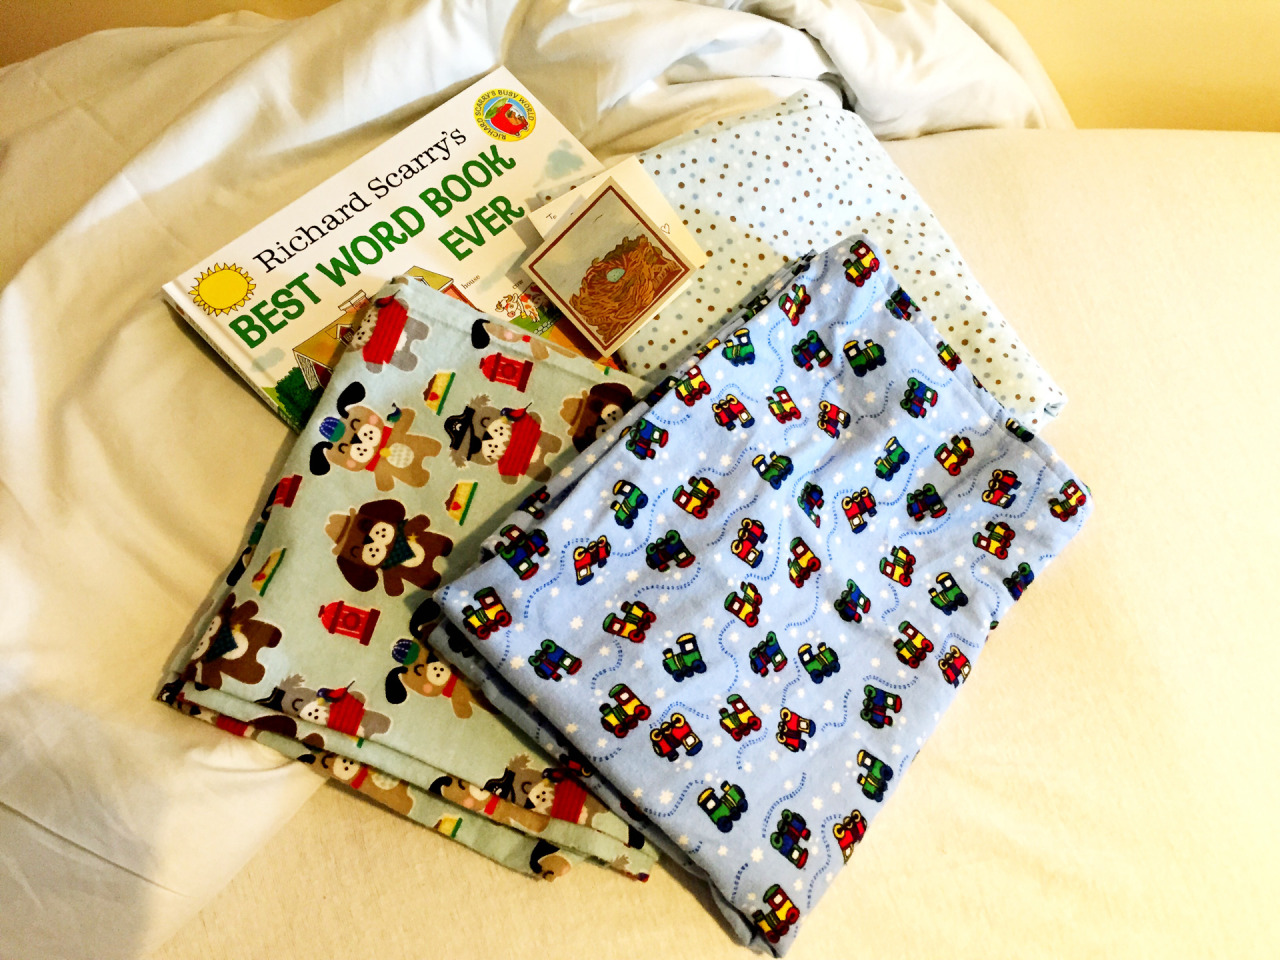 Lesley from the  St. Lawrence String Quartet  brought us some amazing family-tradition, hand-made swaddles and cloths (made by her and Kira), along with Kira's favorite book. Thank you, Lesley! I'm learning that you can never have enough swaddles and cloths.